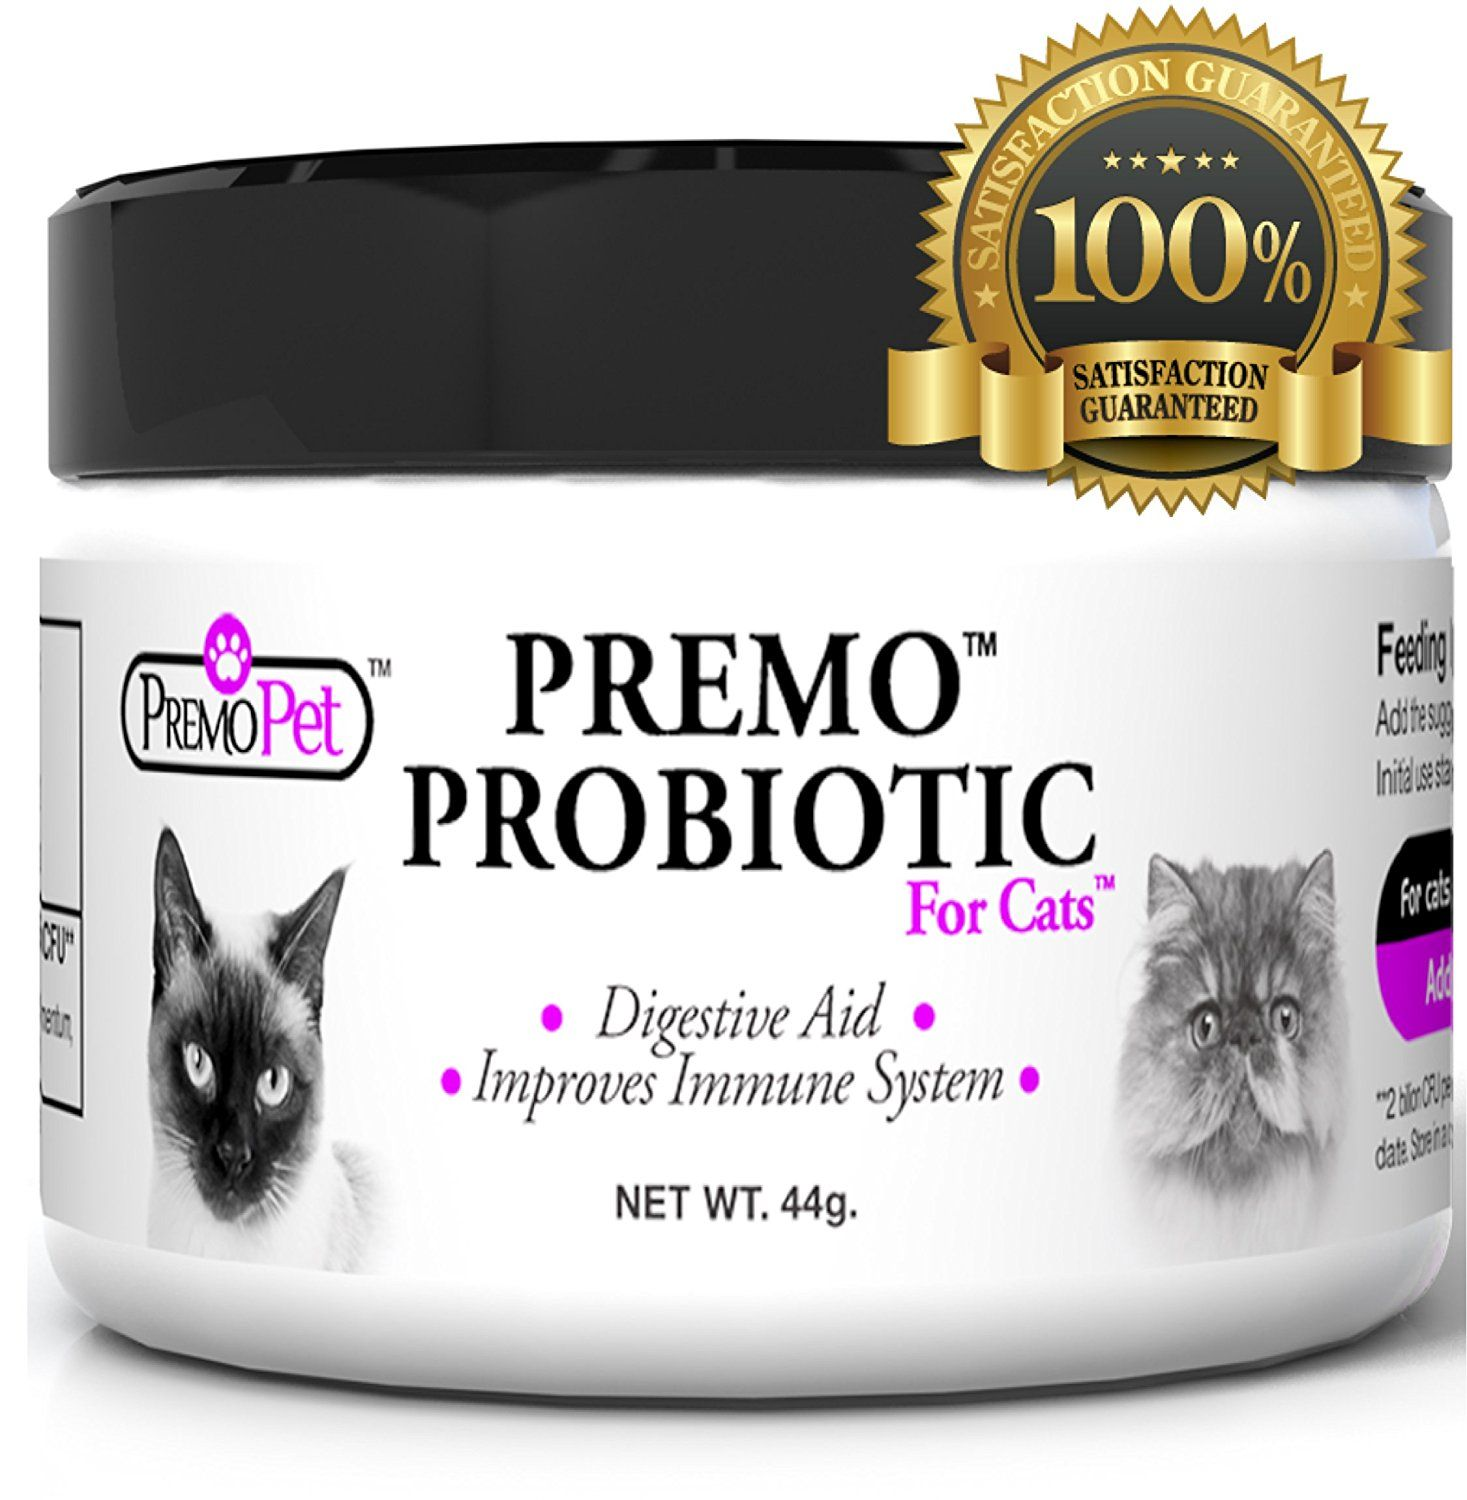 Cat Probiotics 100 Satisfaction Guarantee Natural Choice Plus Prebiotics Made In Usa Best For Diarrhea Probiotics For Cats Digestion Aid Healthy Cat